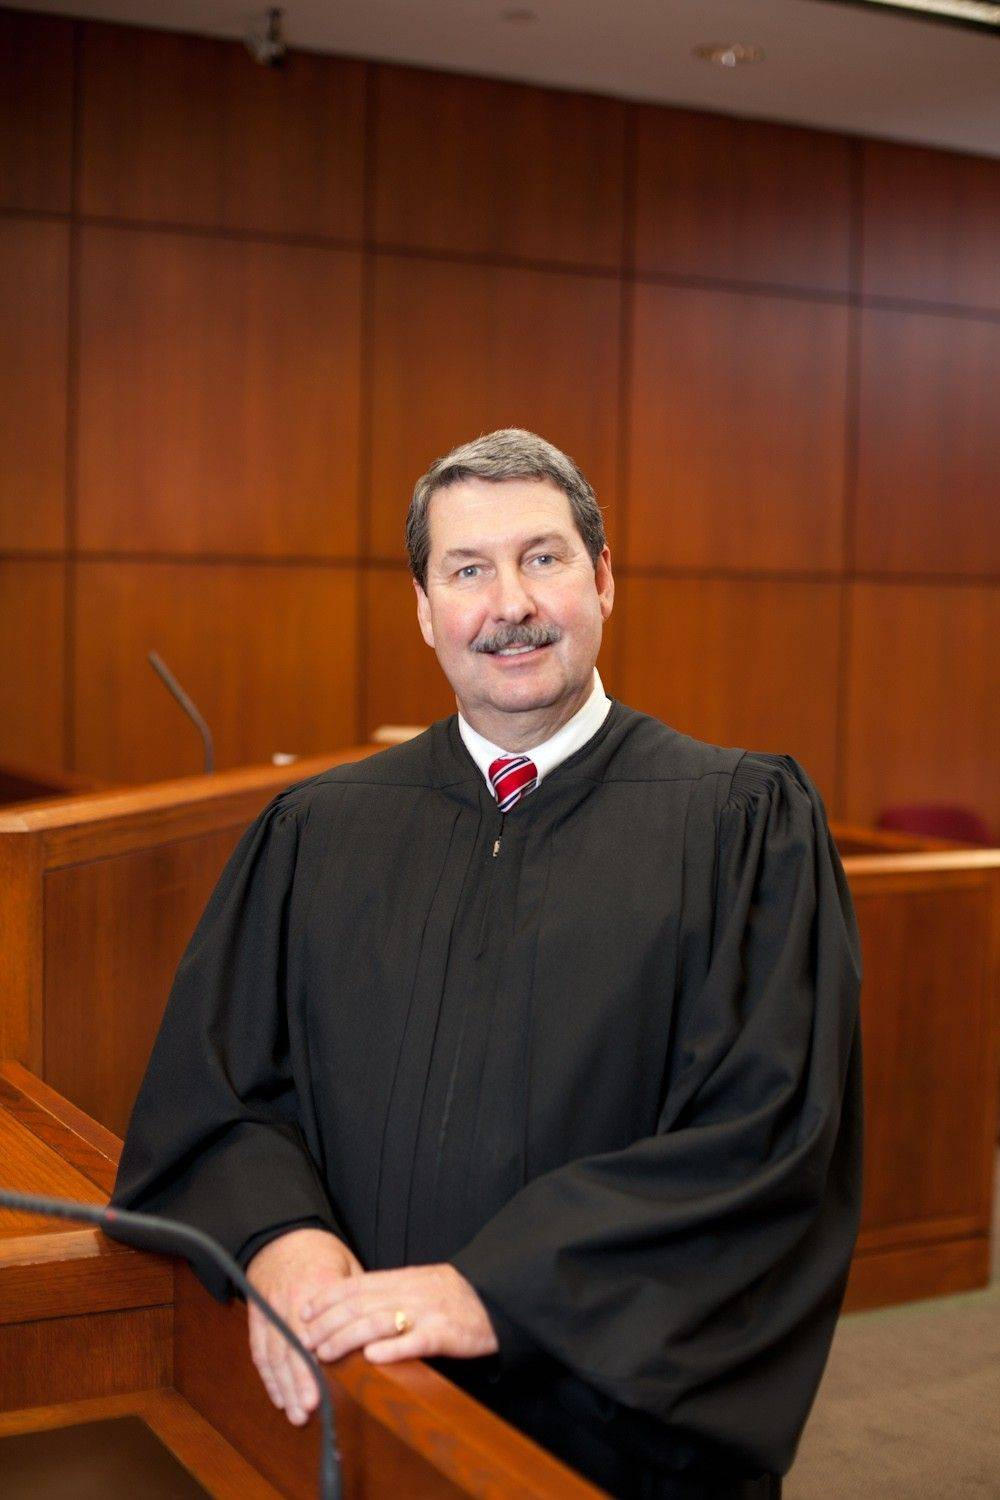 DuPage County Circuit Court Chief Judge Jack Elsner